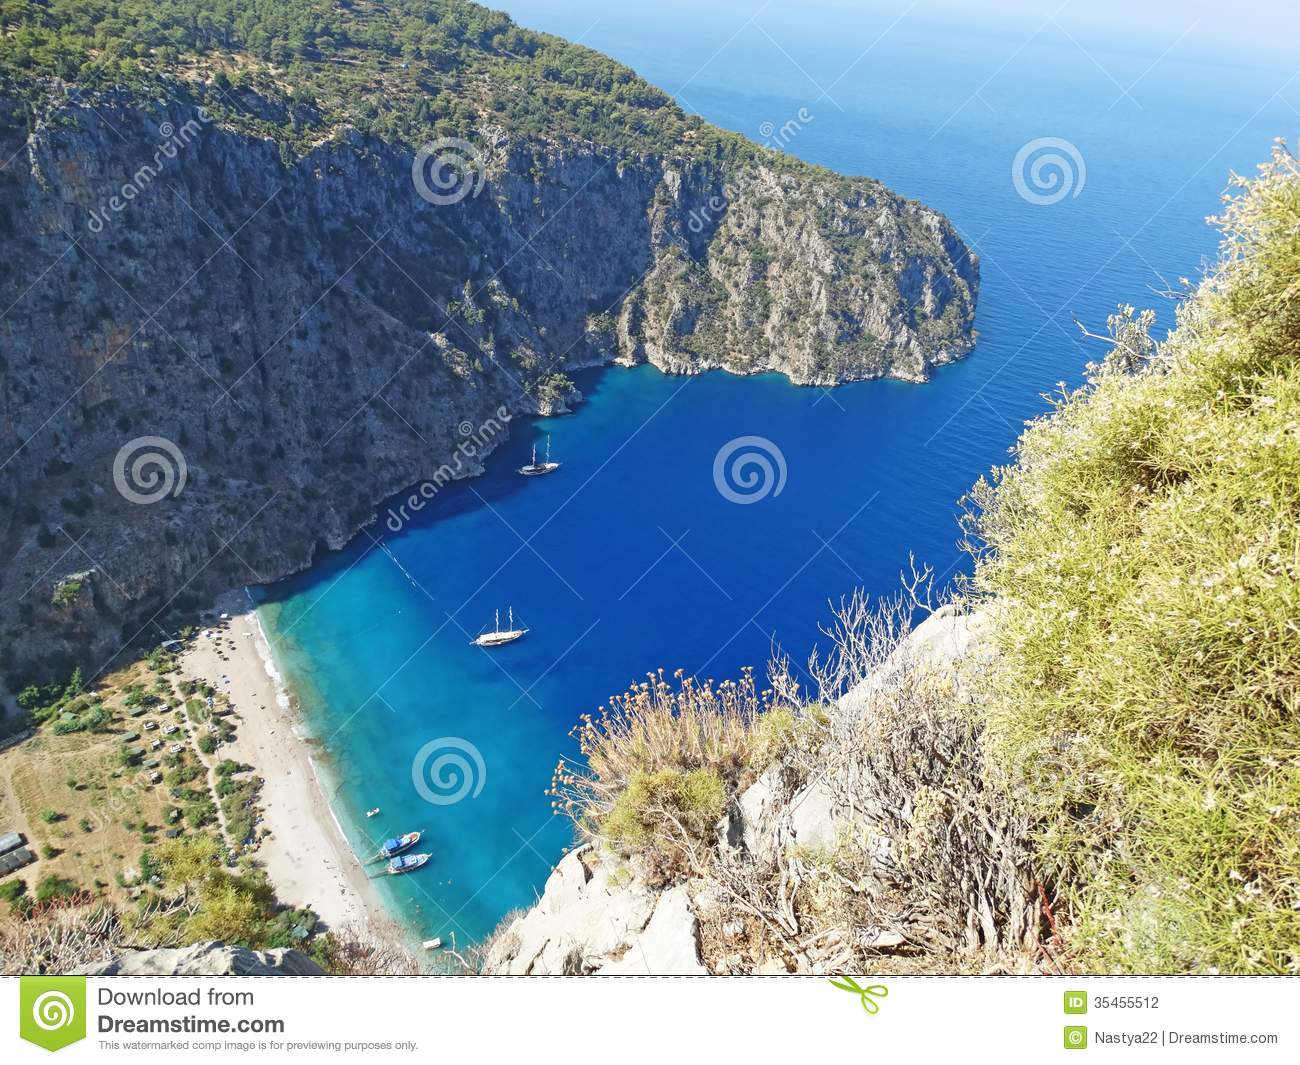 Butterfly Valley Deep Gorge Fethiye Turkey Stock Photography - Image: 35455512